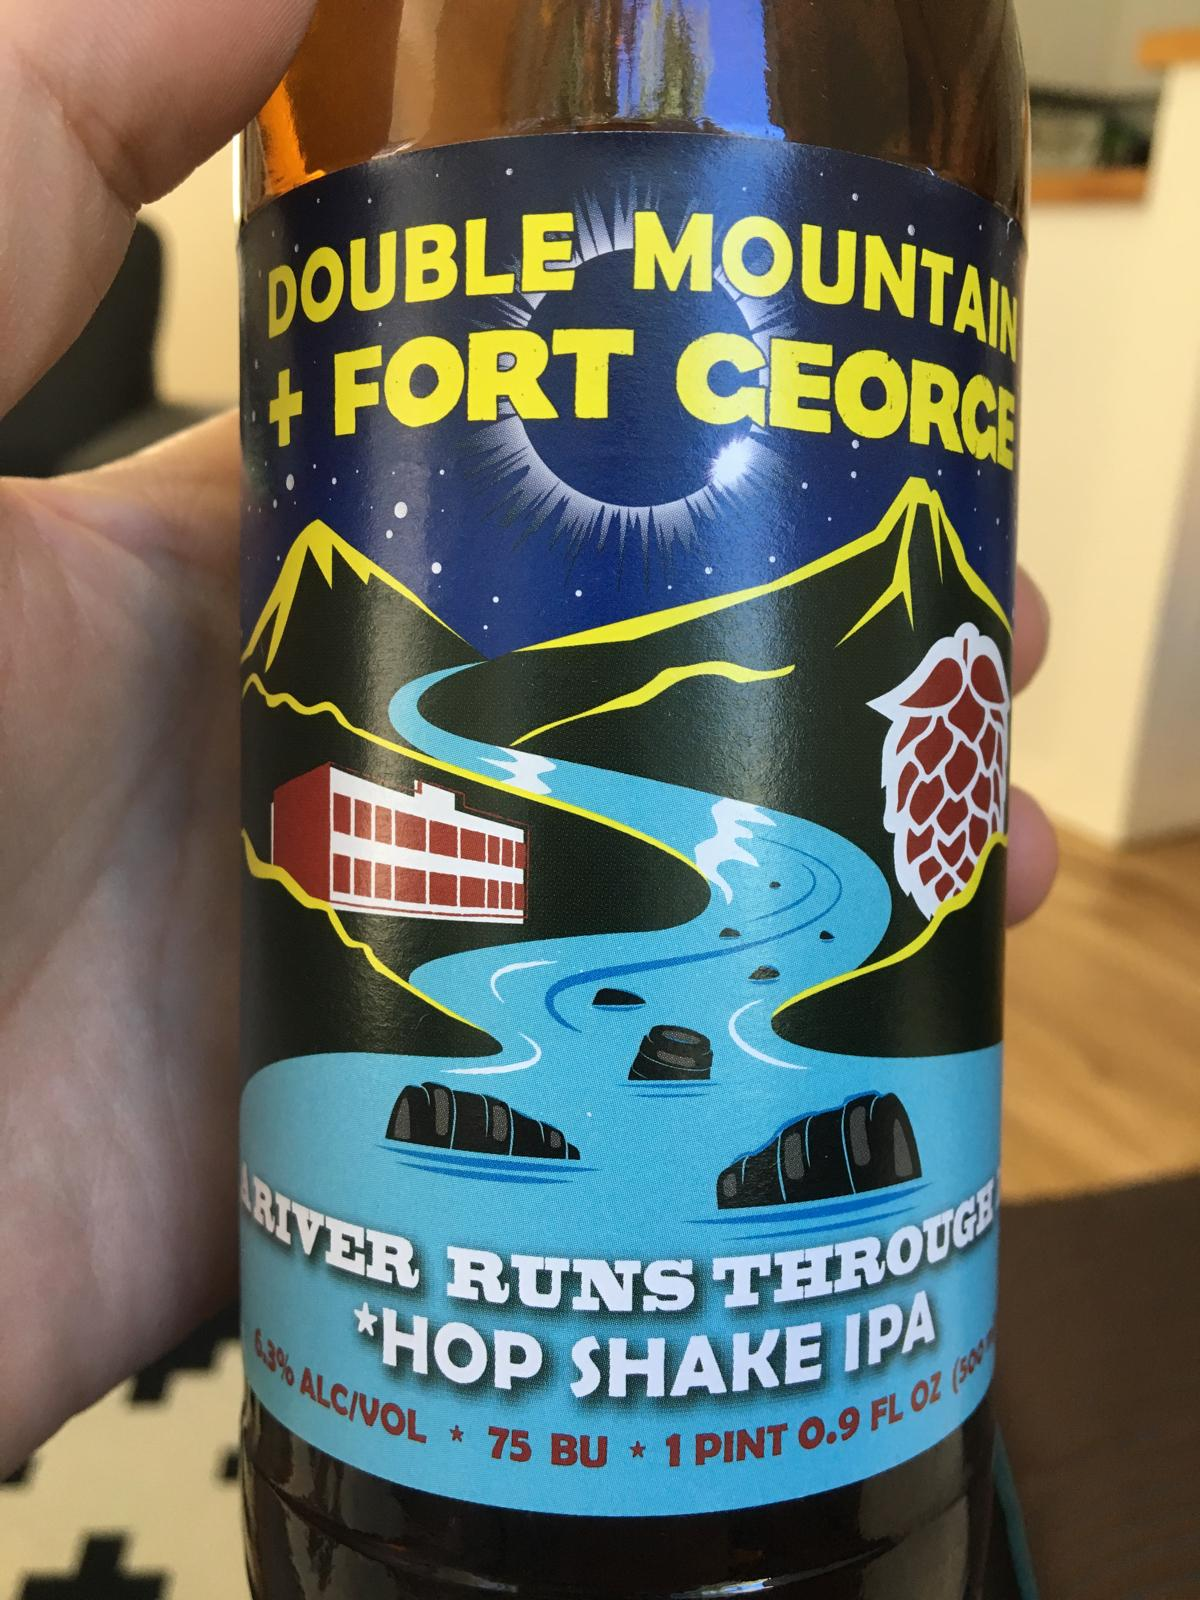 A RIver Runs Through It Hop Shake IPA (Collaboration With Fort George)